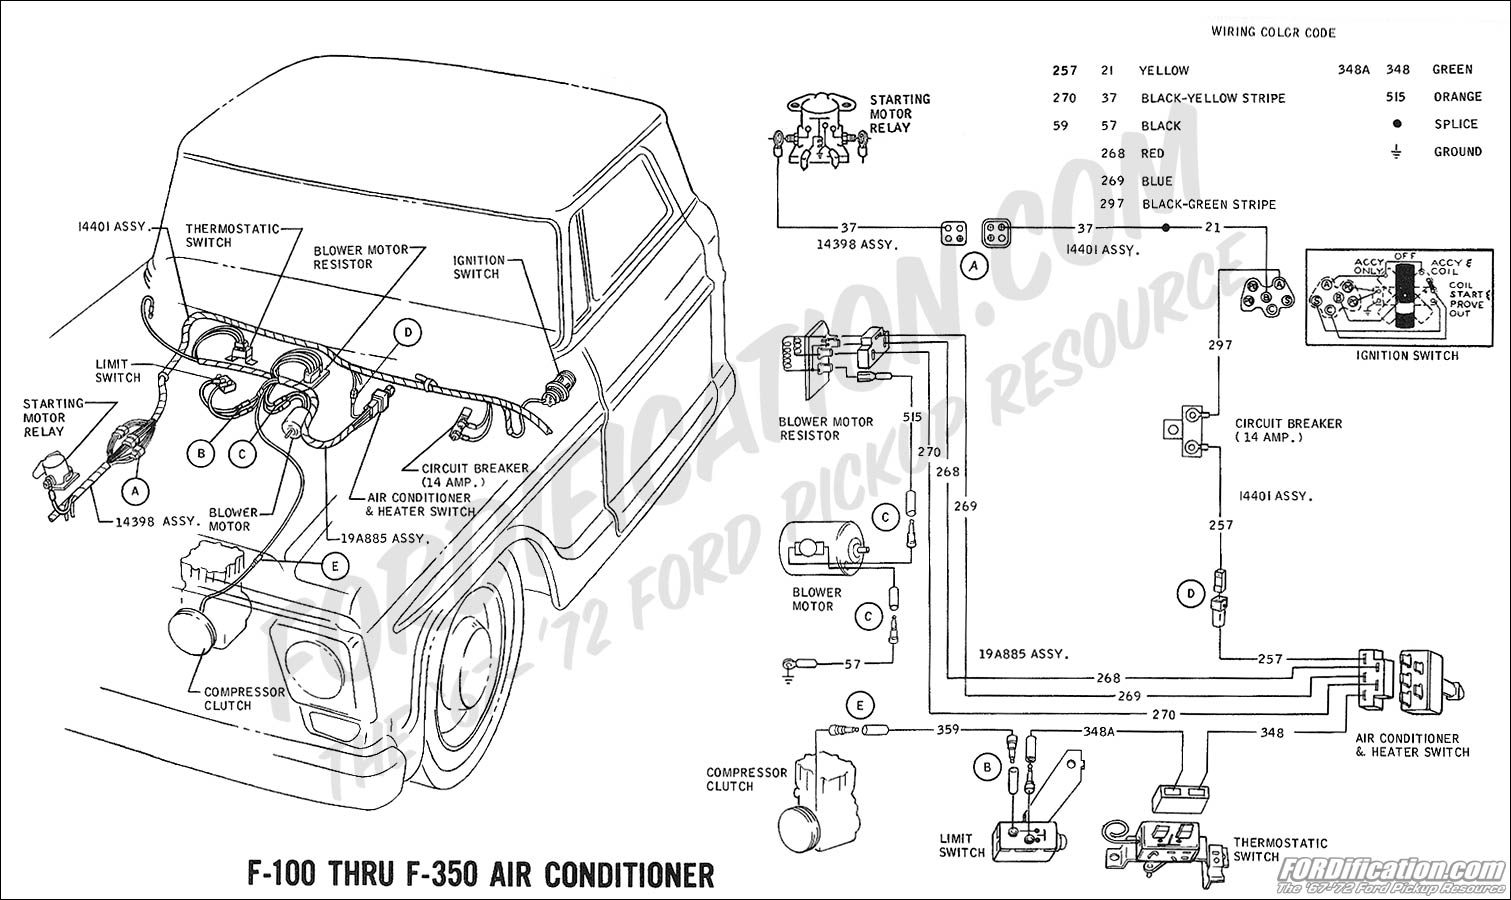 Clic Ford Truck Wiring Harness - Wiring Diagram •